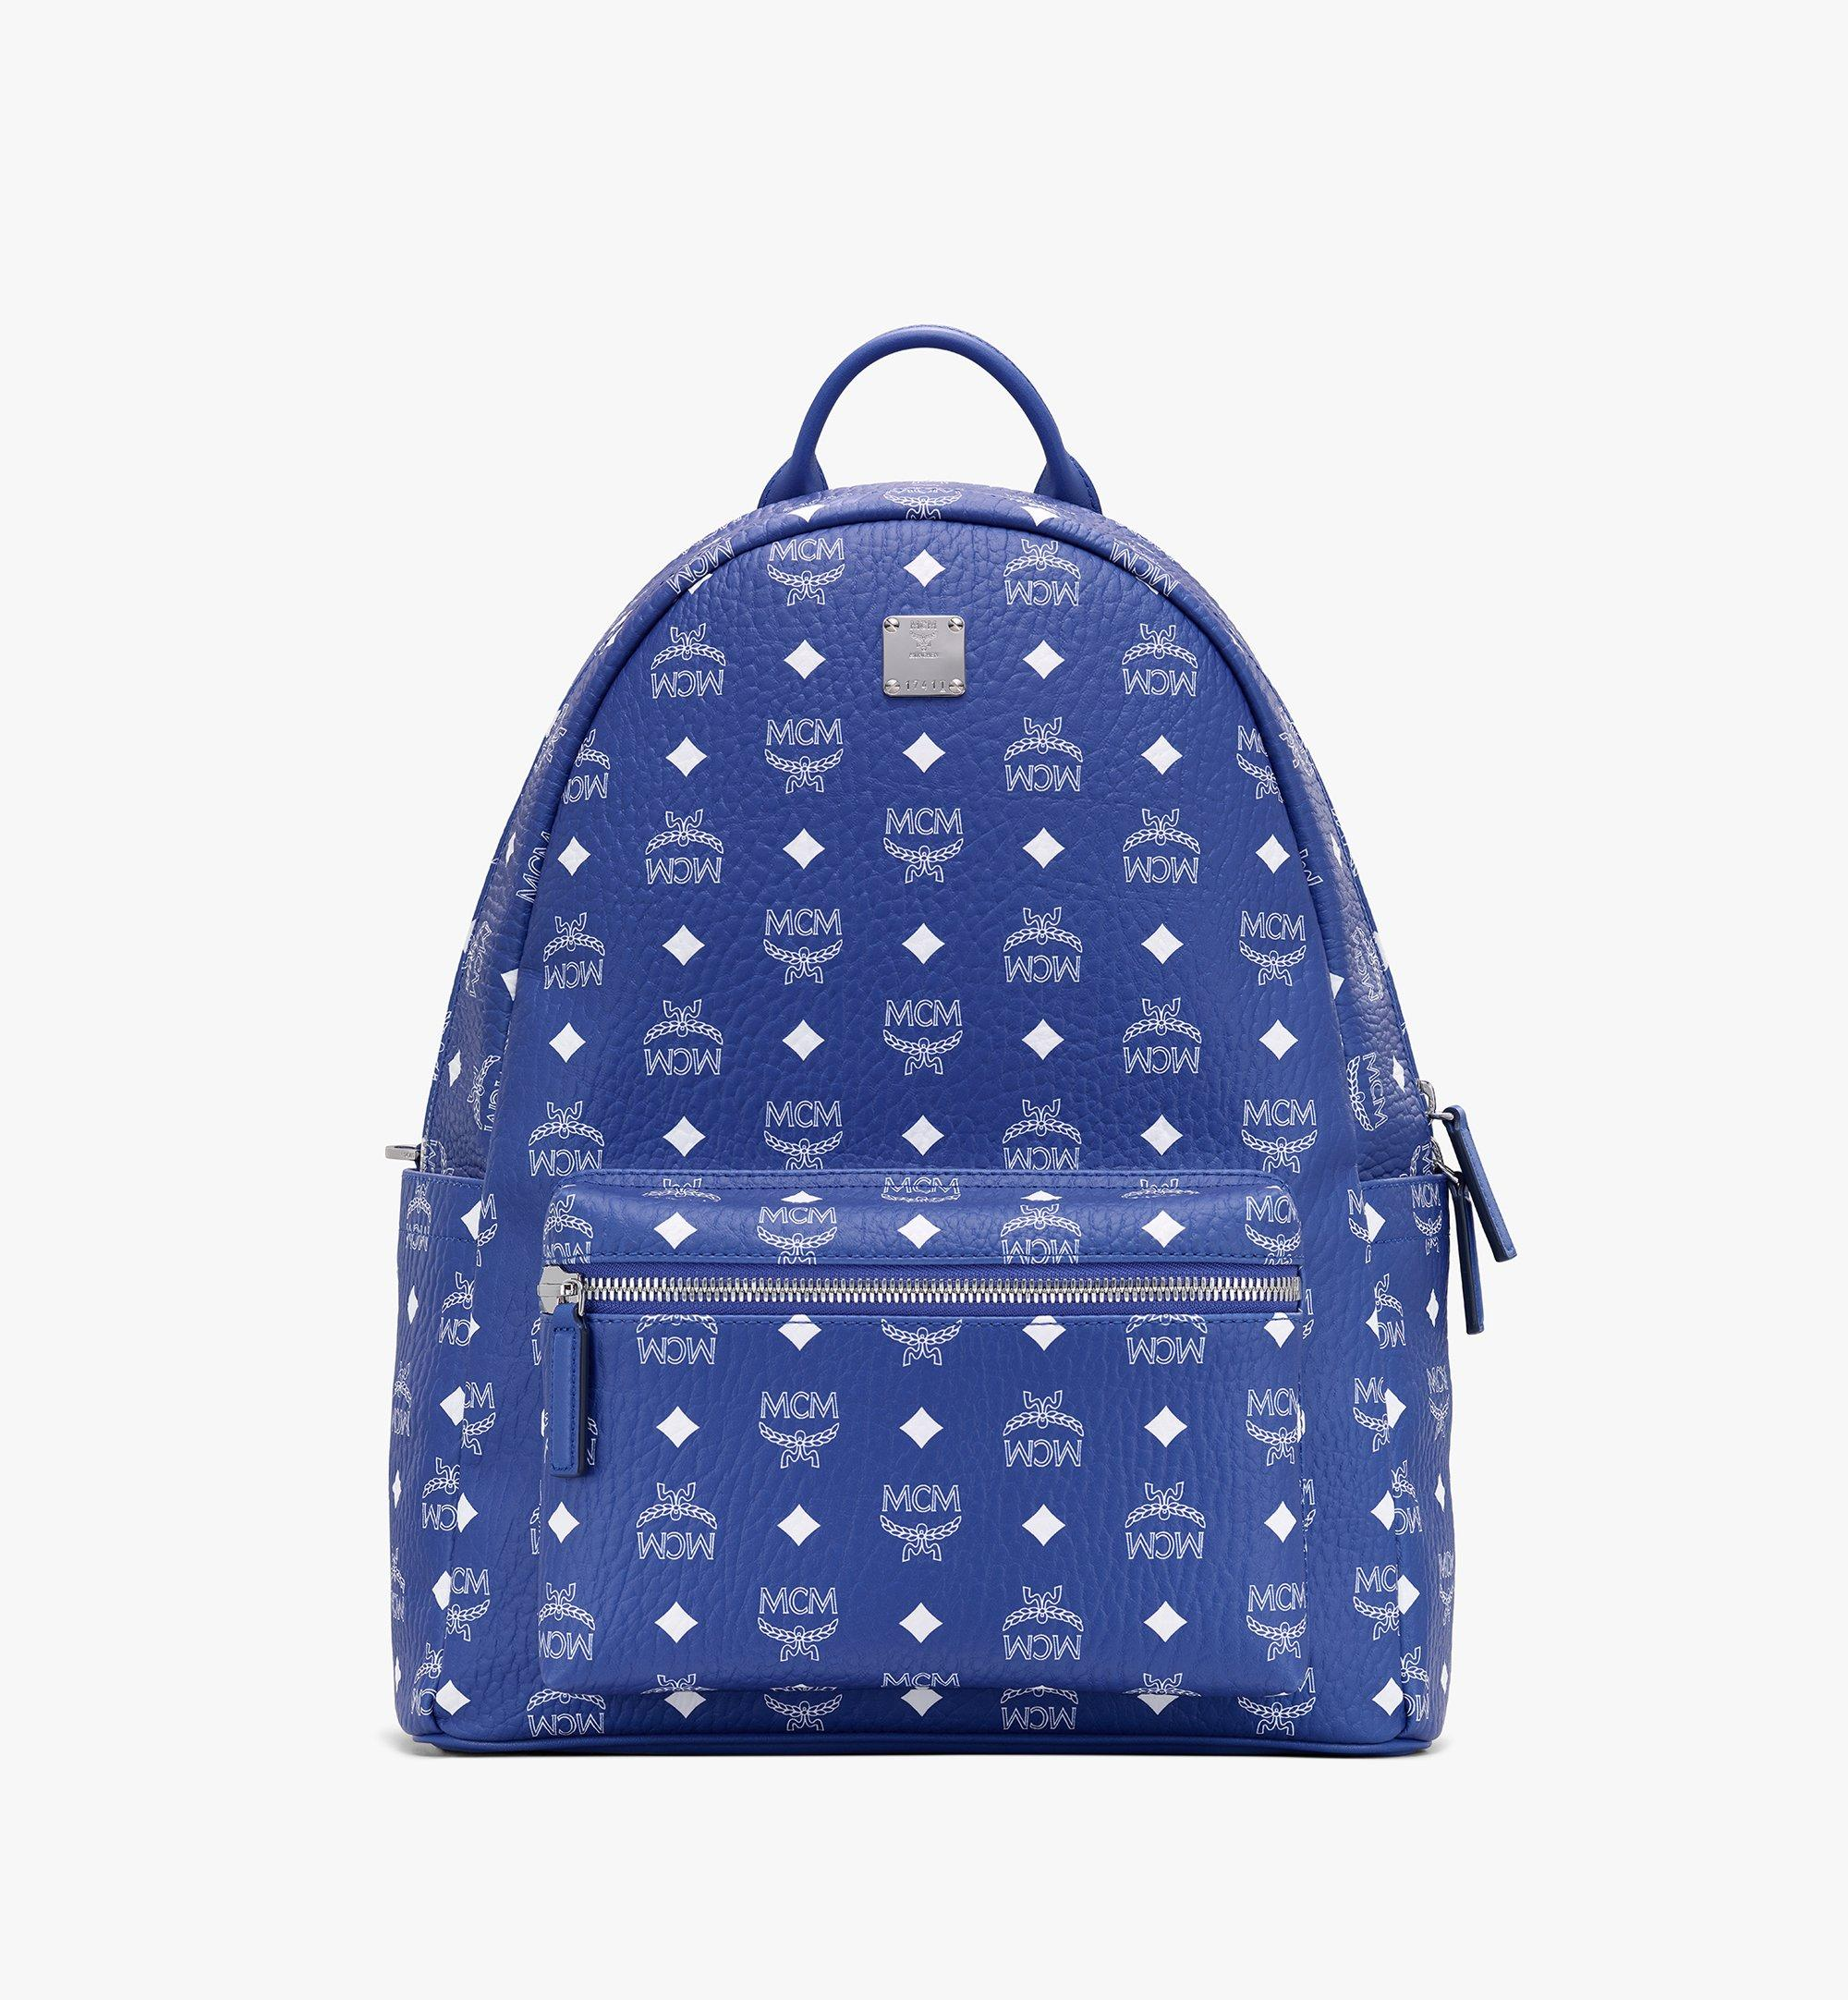 MCM BACKPACK-MMKASVE02 Blue 4106 Alternate View 1